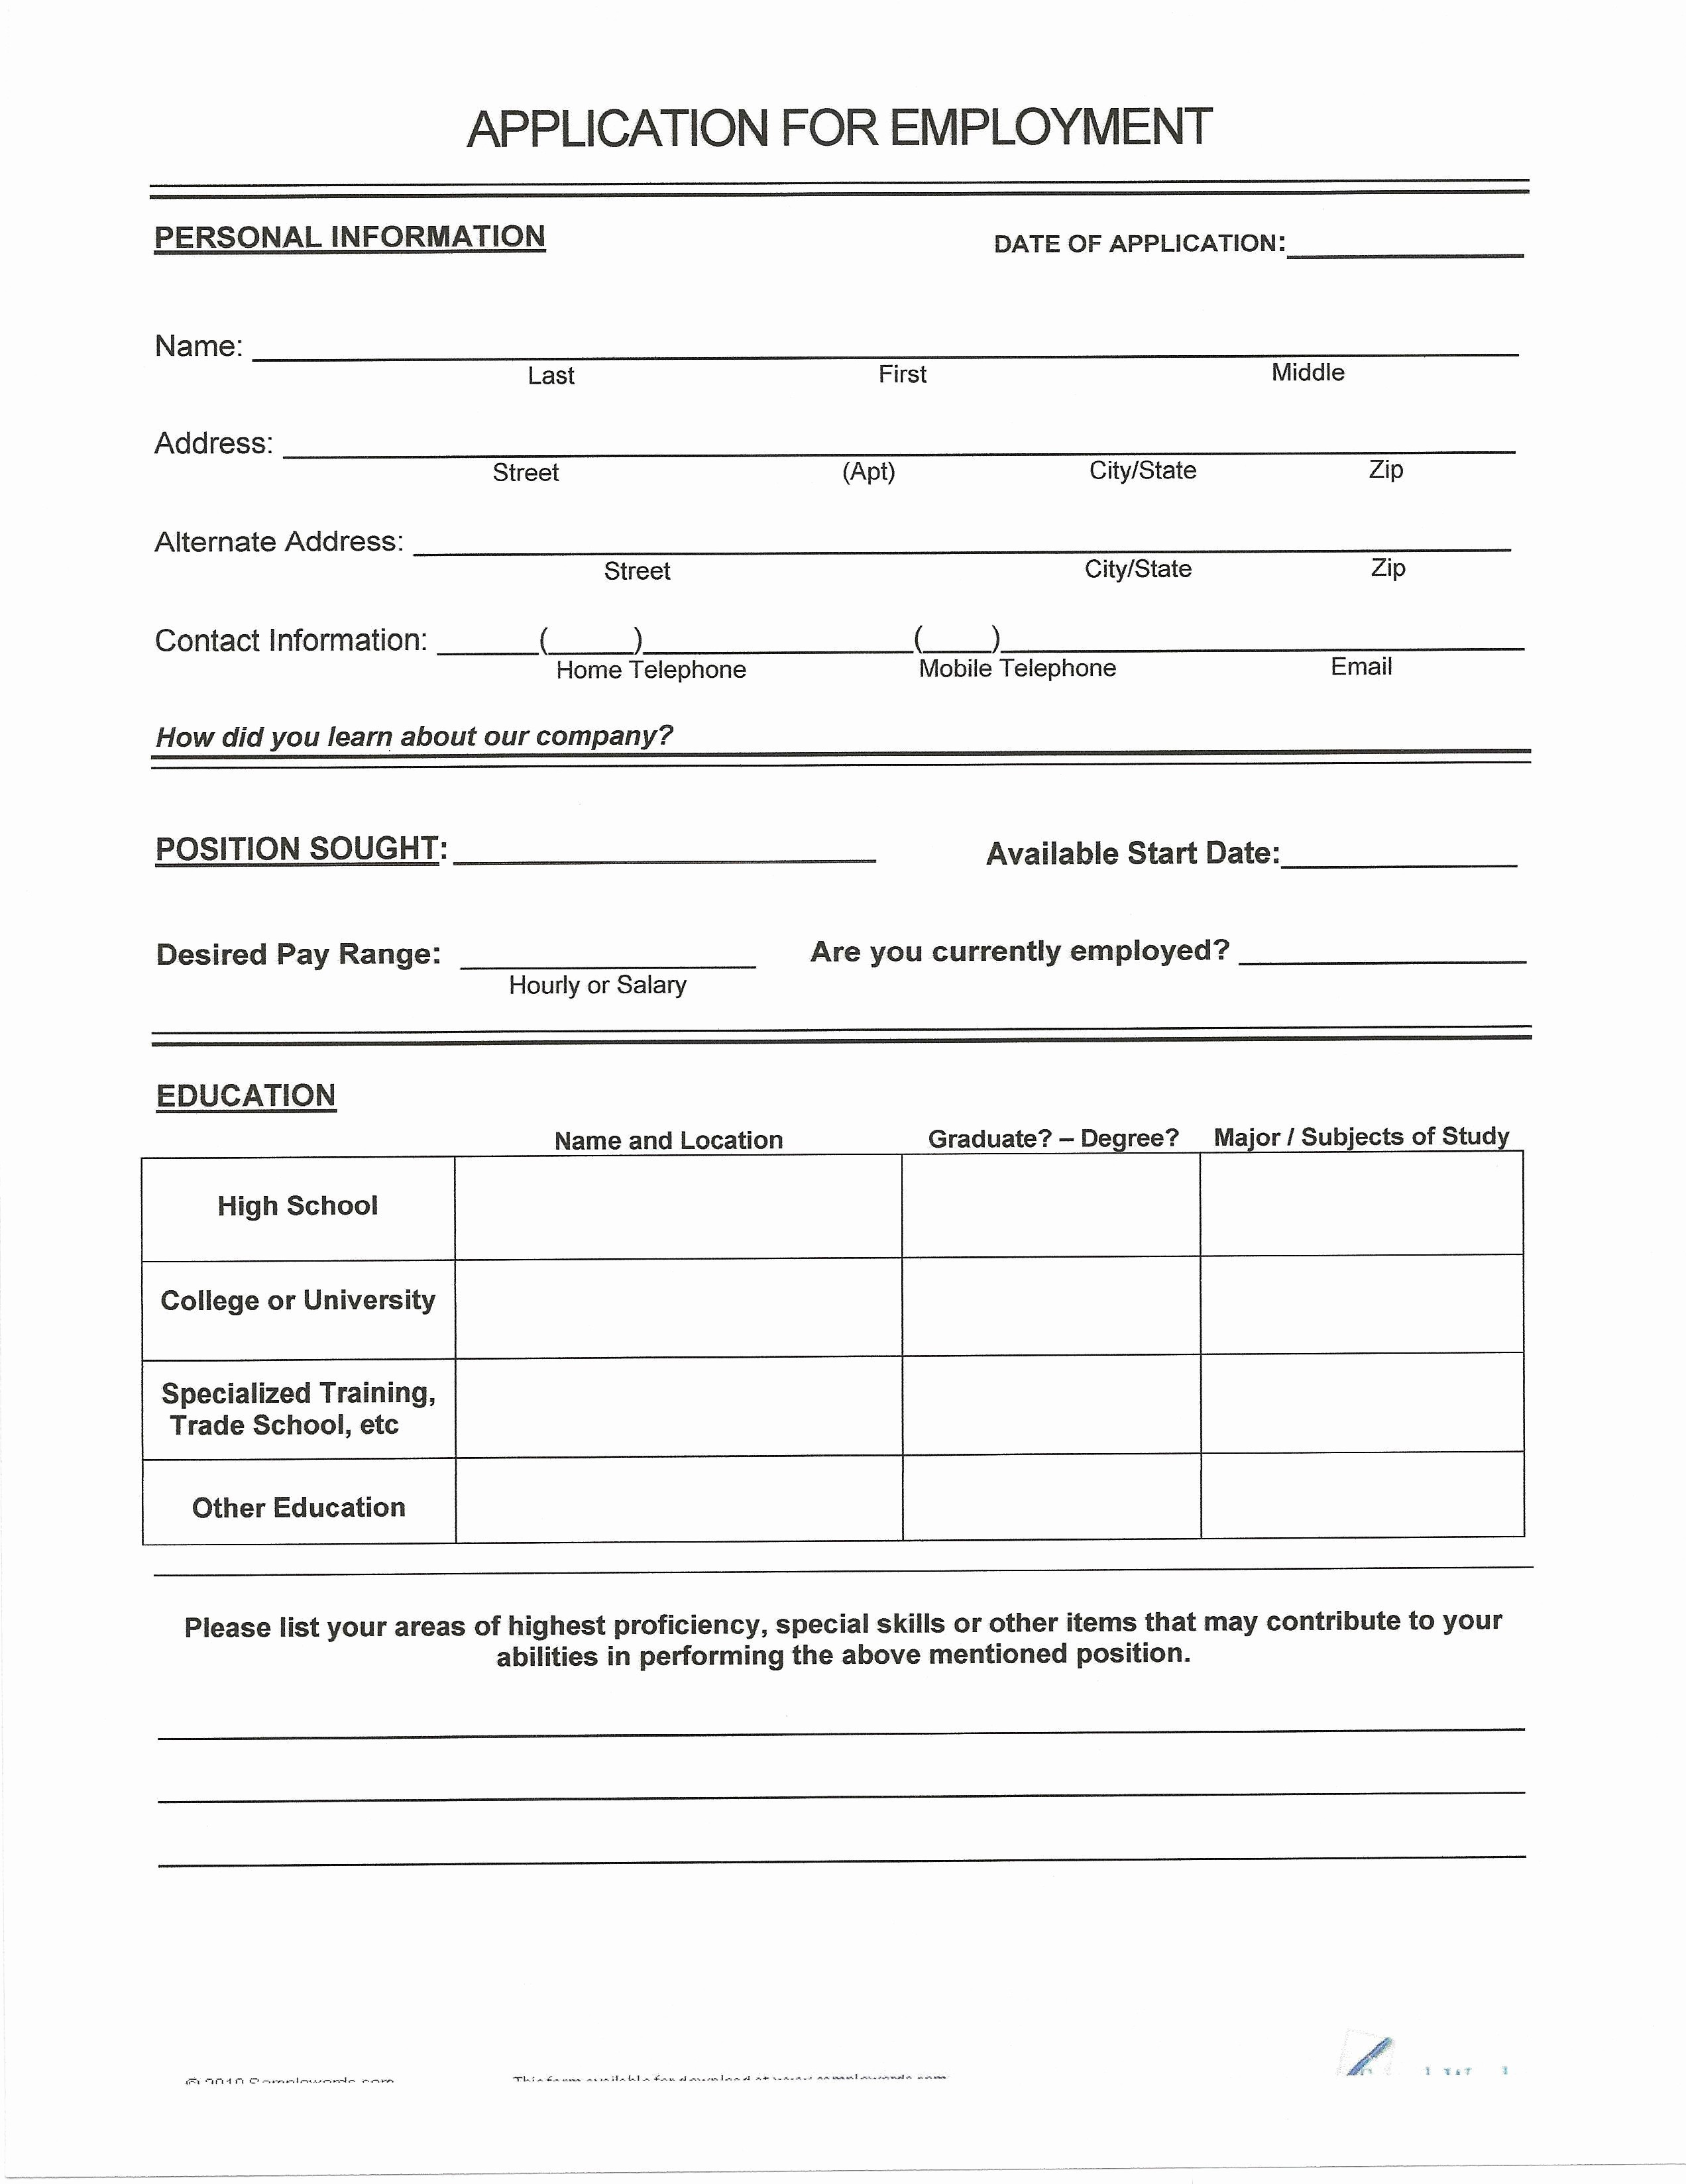 Resumes Fill In the Blanks Lovely Easy Resume Templates with Fill In the Blanks